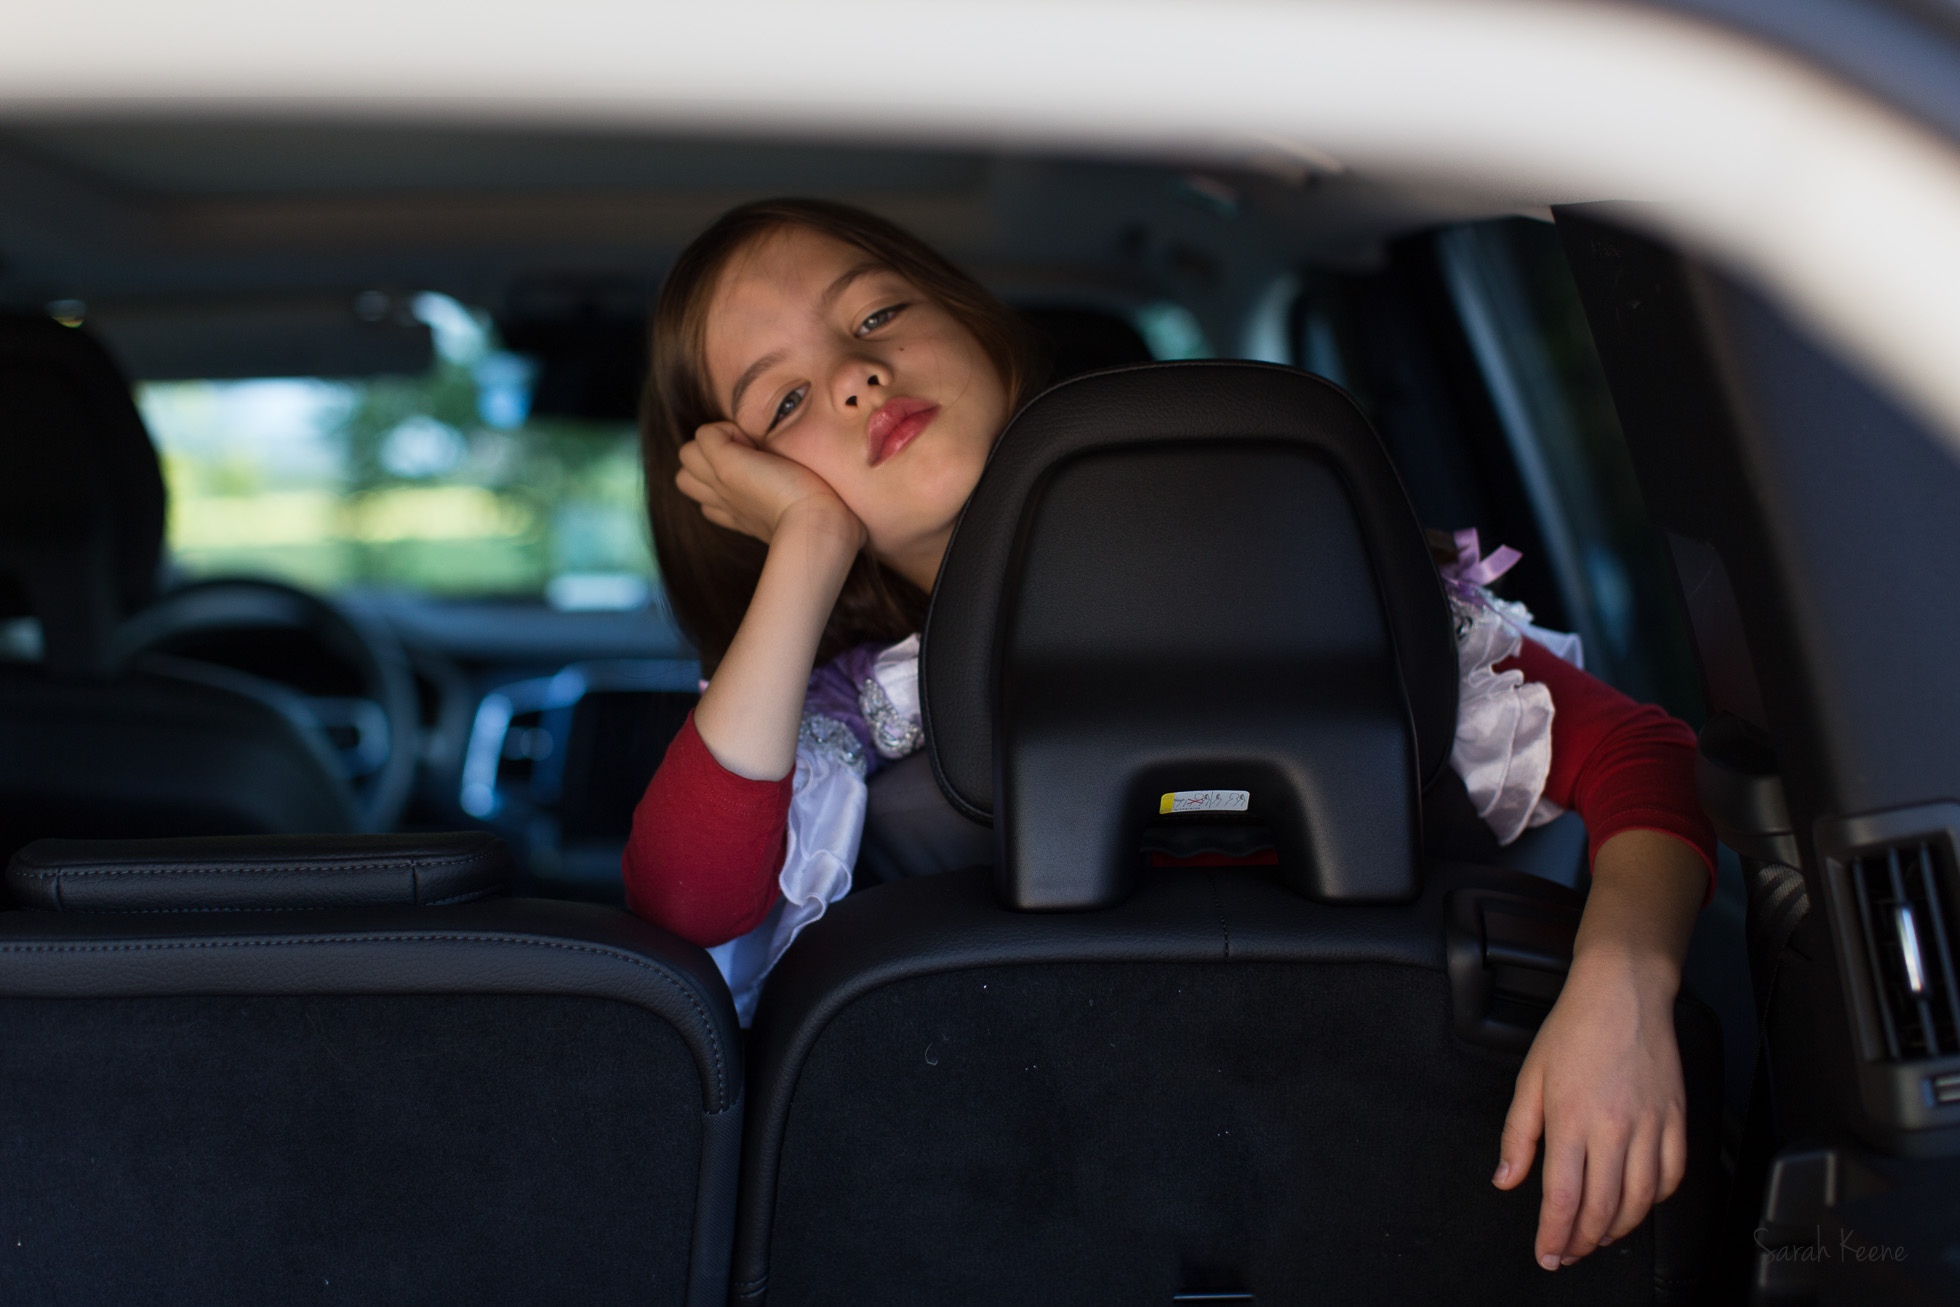 Bored little girl in the car by Sarah Keene